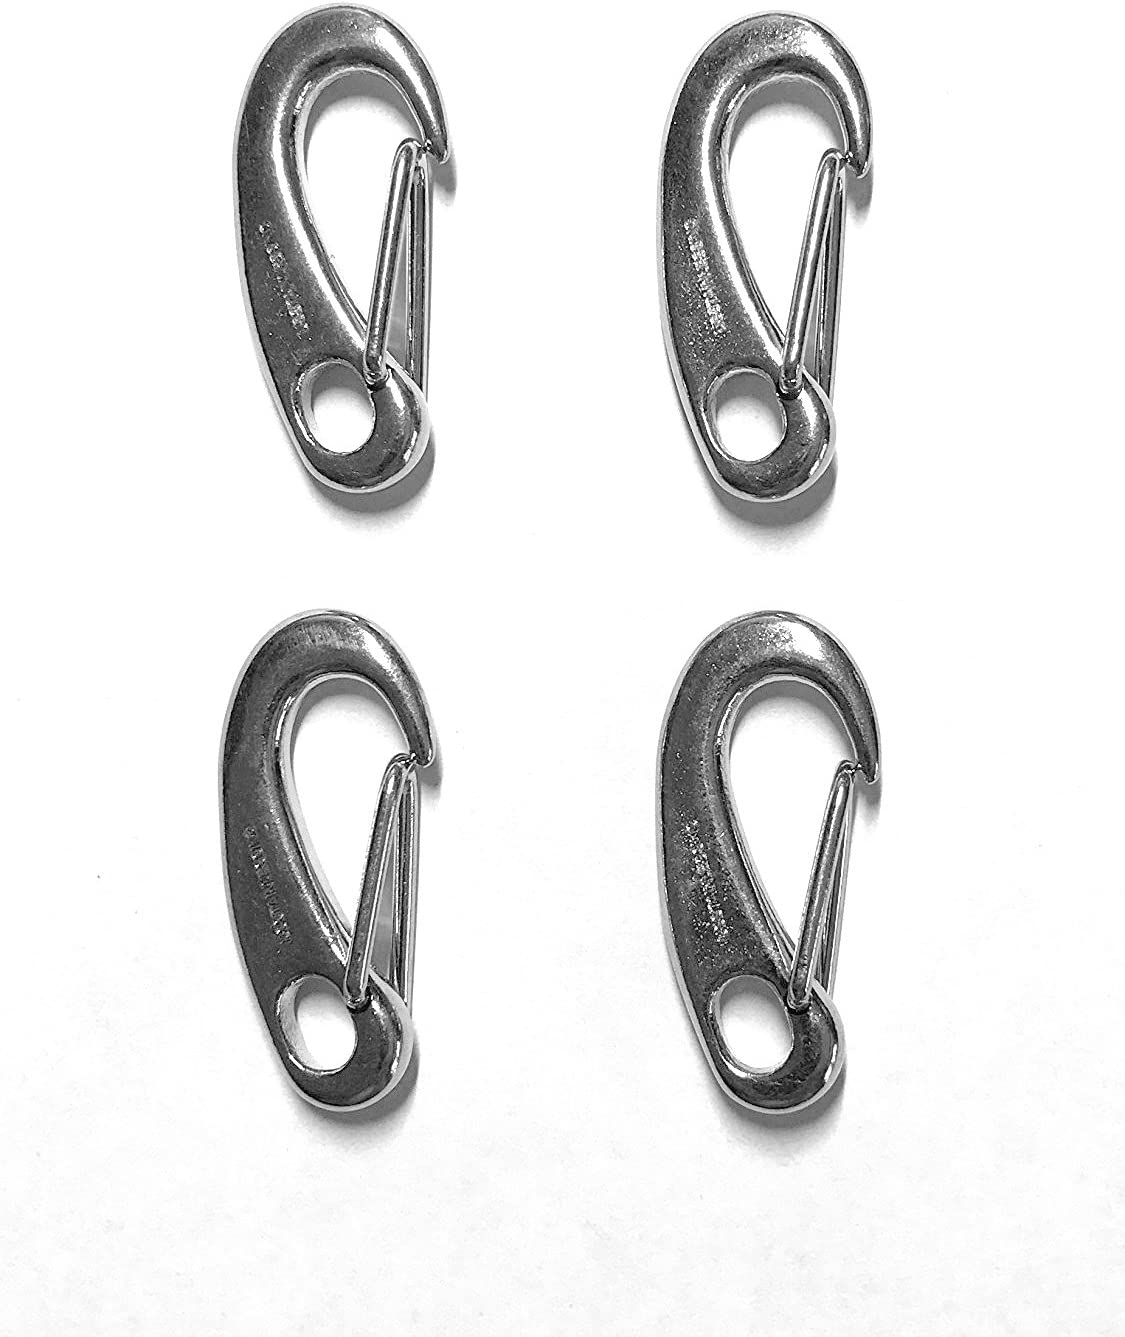 """4 Pieces Stainless Steel 316 Spring Snap Lobster Claw 1.25"""" (32mm) Marine Grade"""